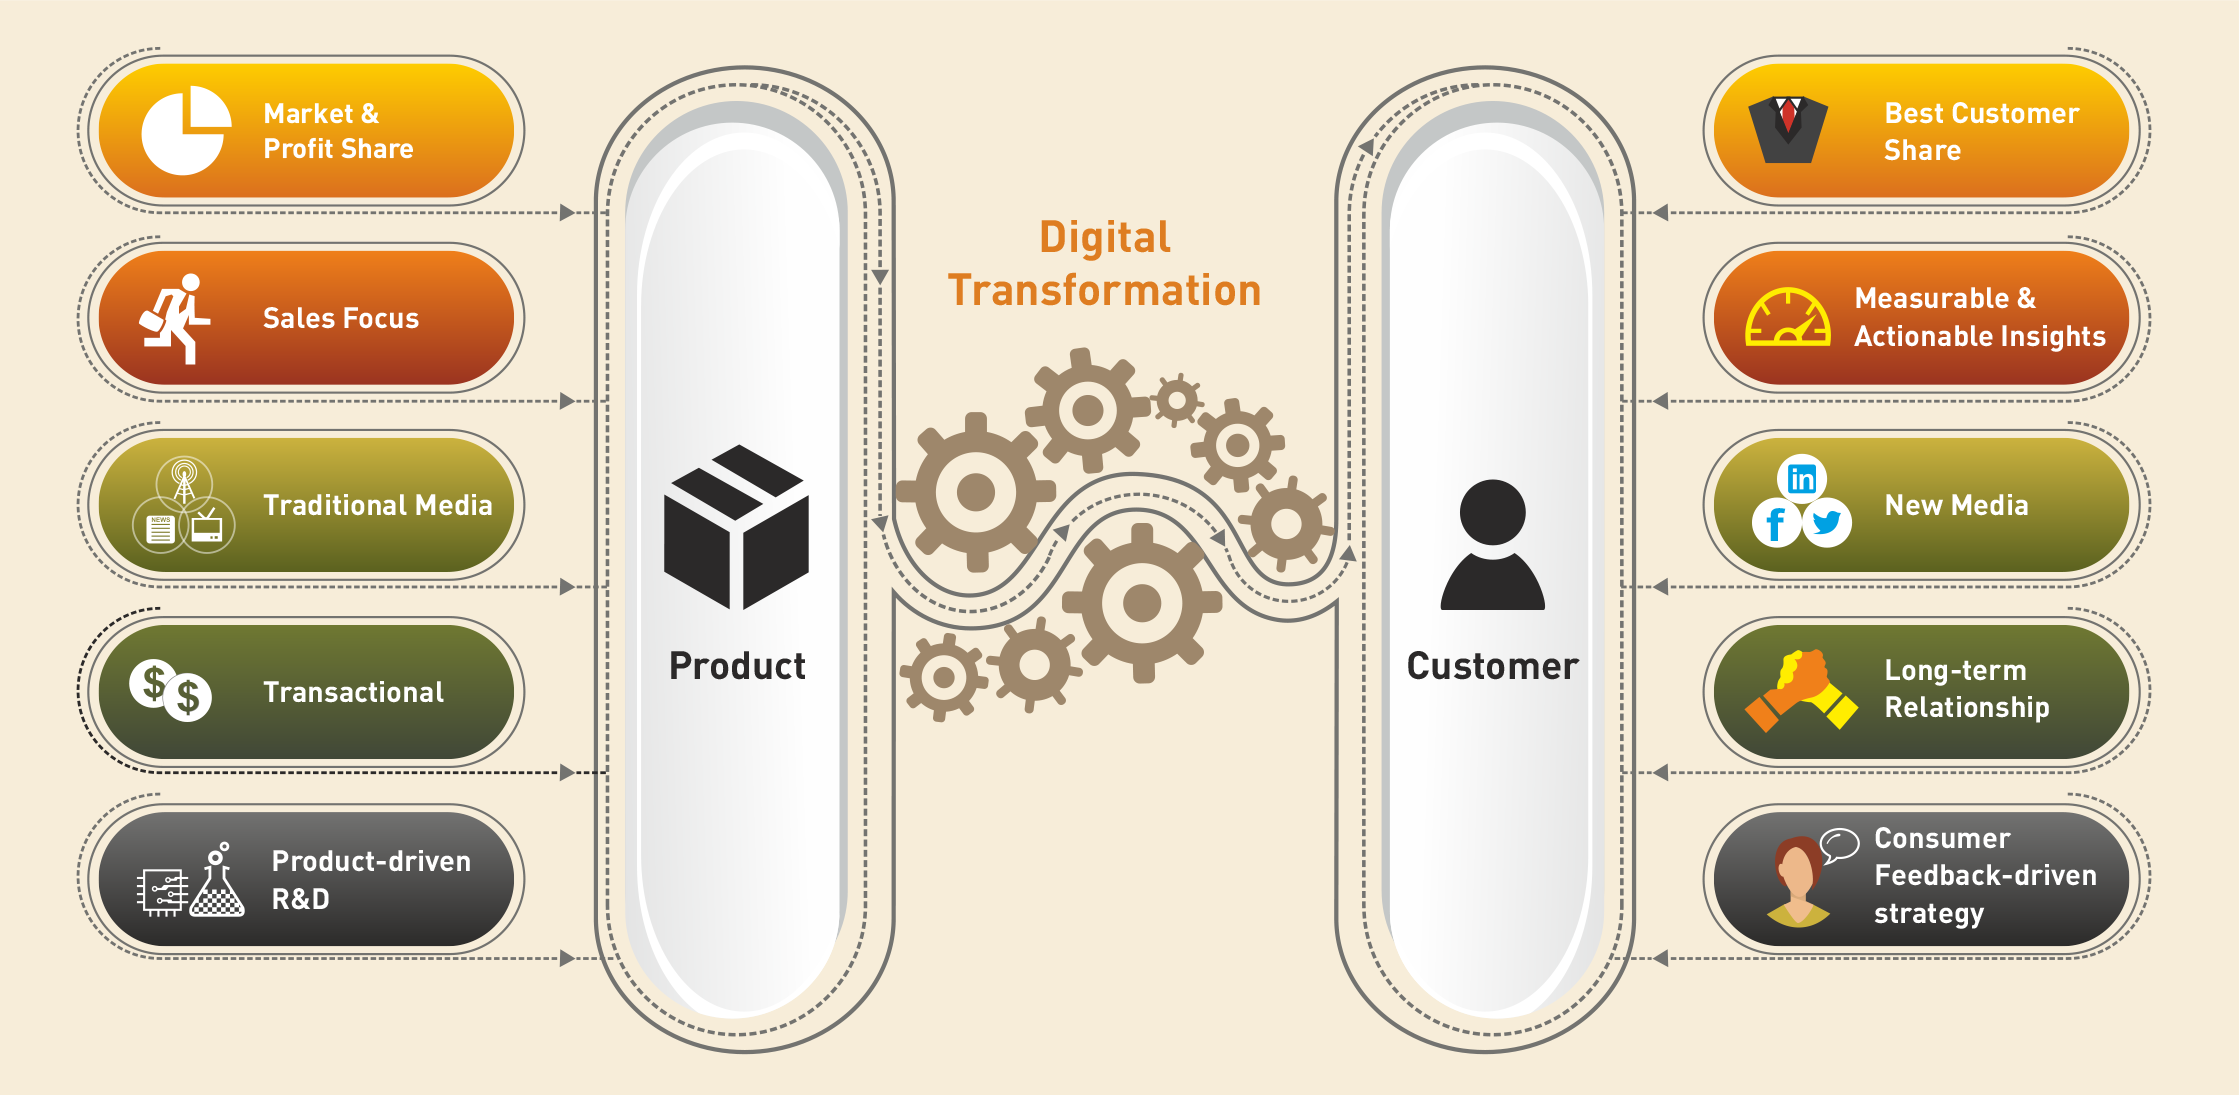 Digital transformation of the customer experience